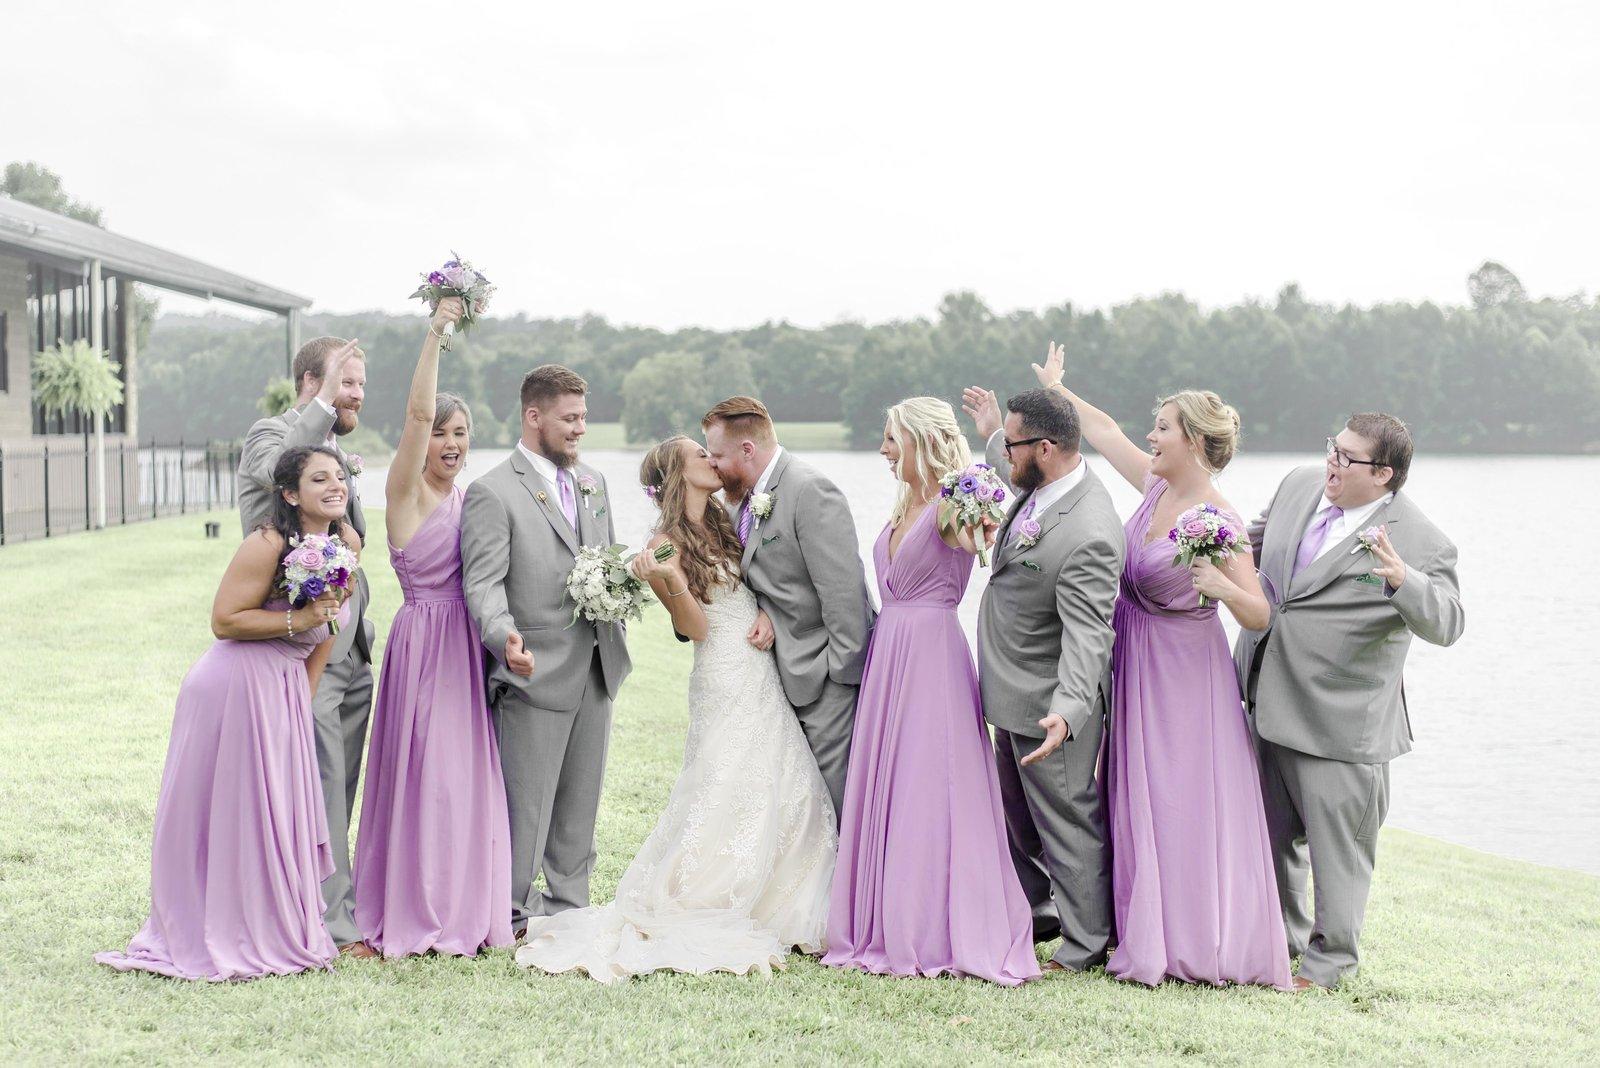 Cassidy_Alane_Photography-Jessica&EvanJonesWedding-Lake_Lyndsay-Ohio_Wedding_Photographer-03